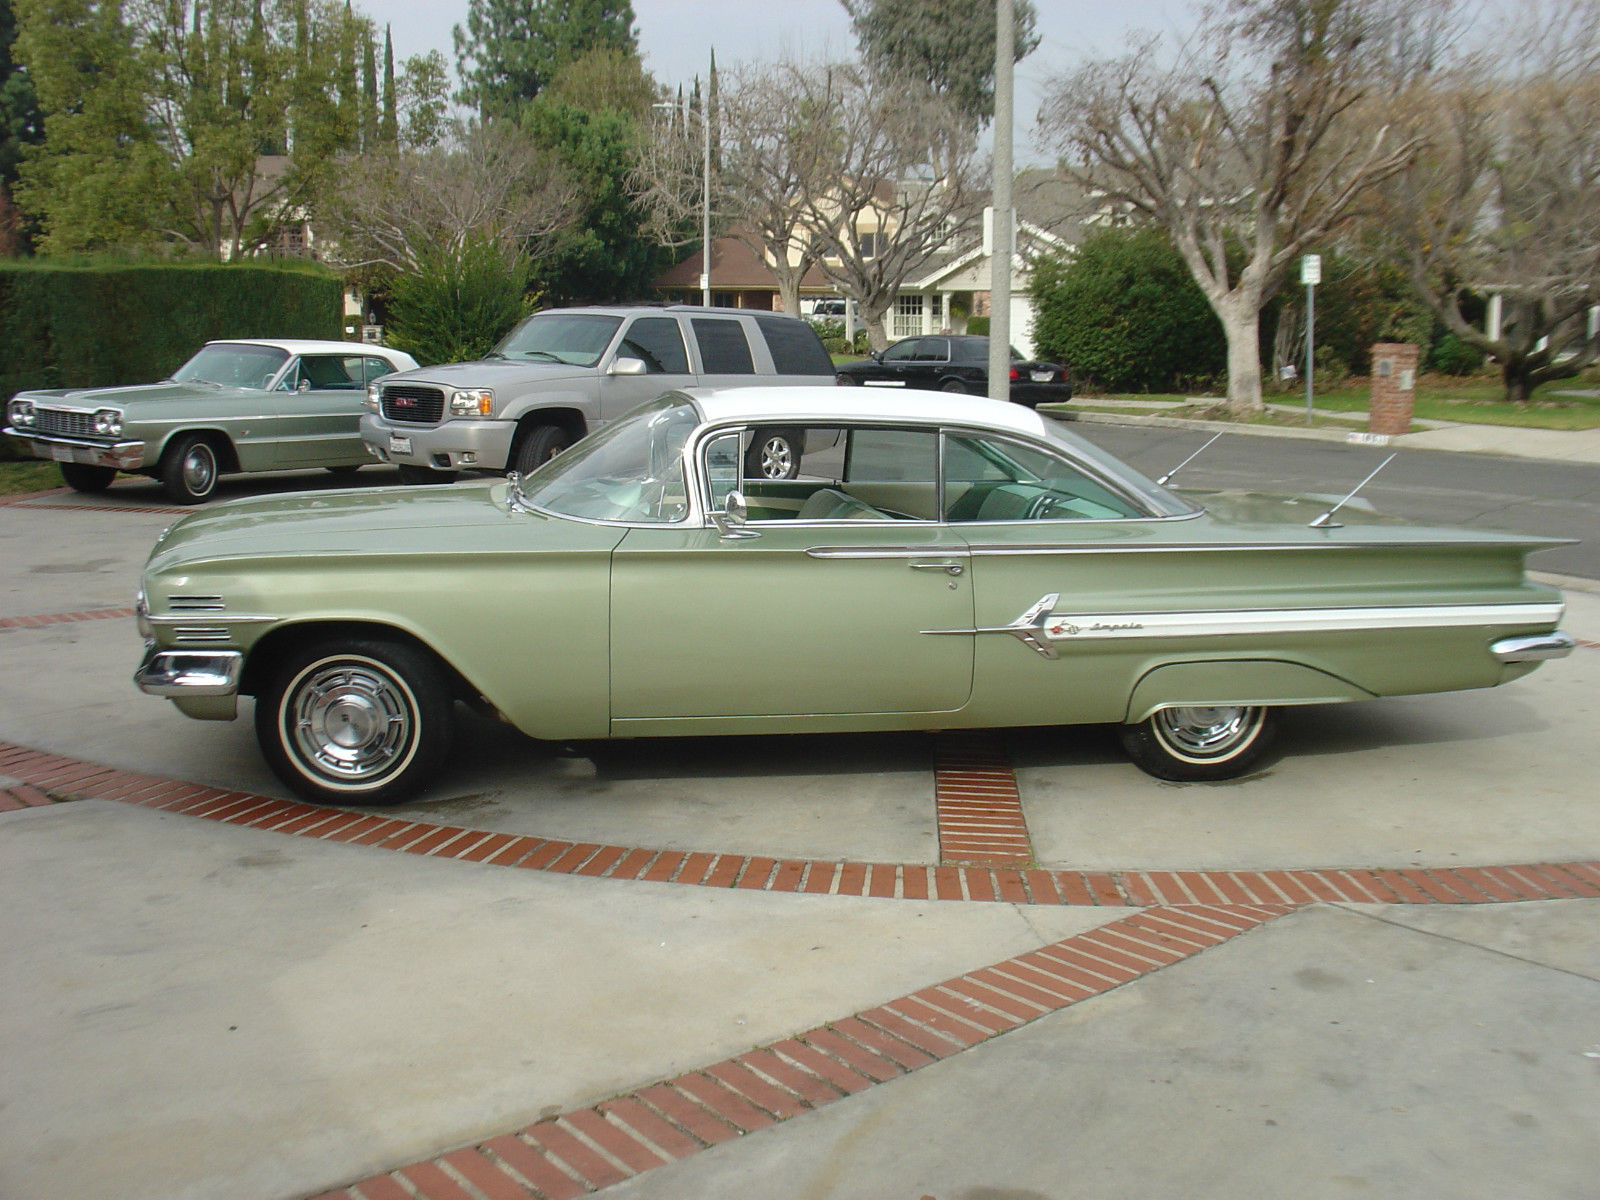 1960 Chevy Impala Coupe Mint Green Ac Car 1958 1959 1960 1961 1962